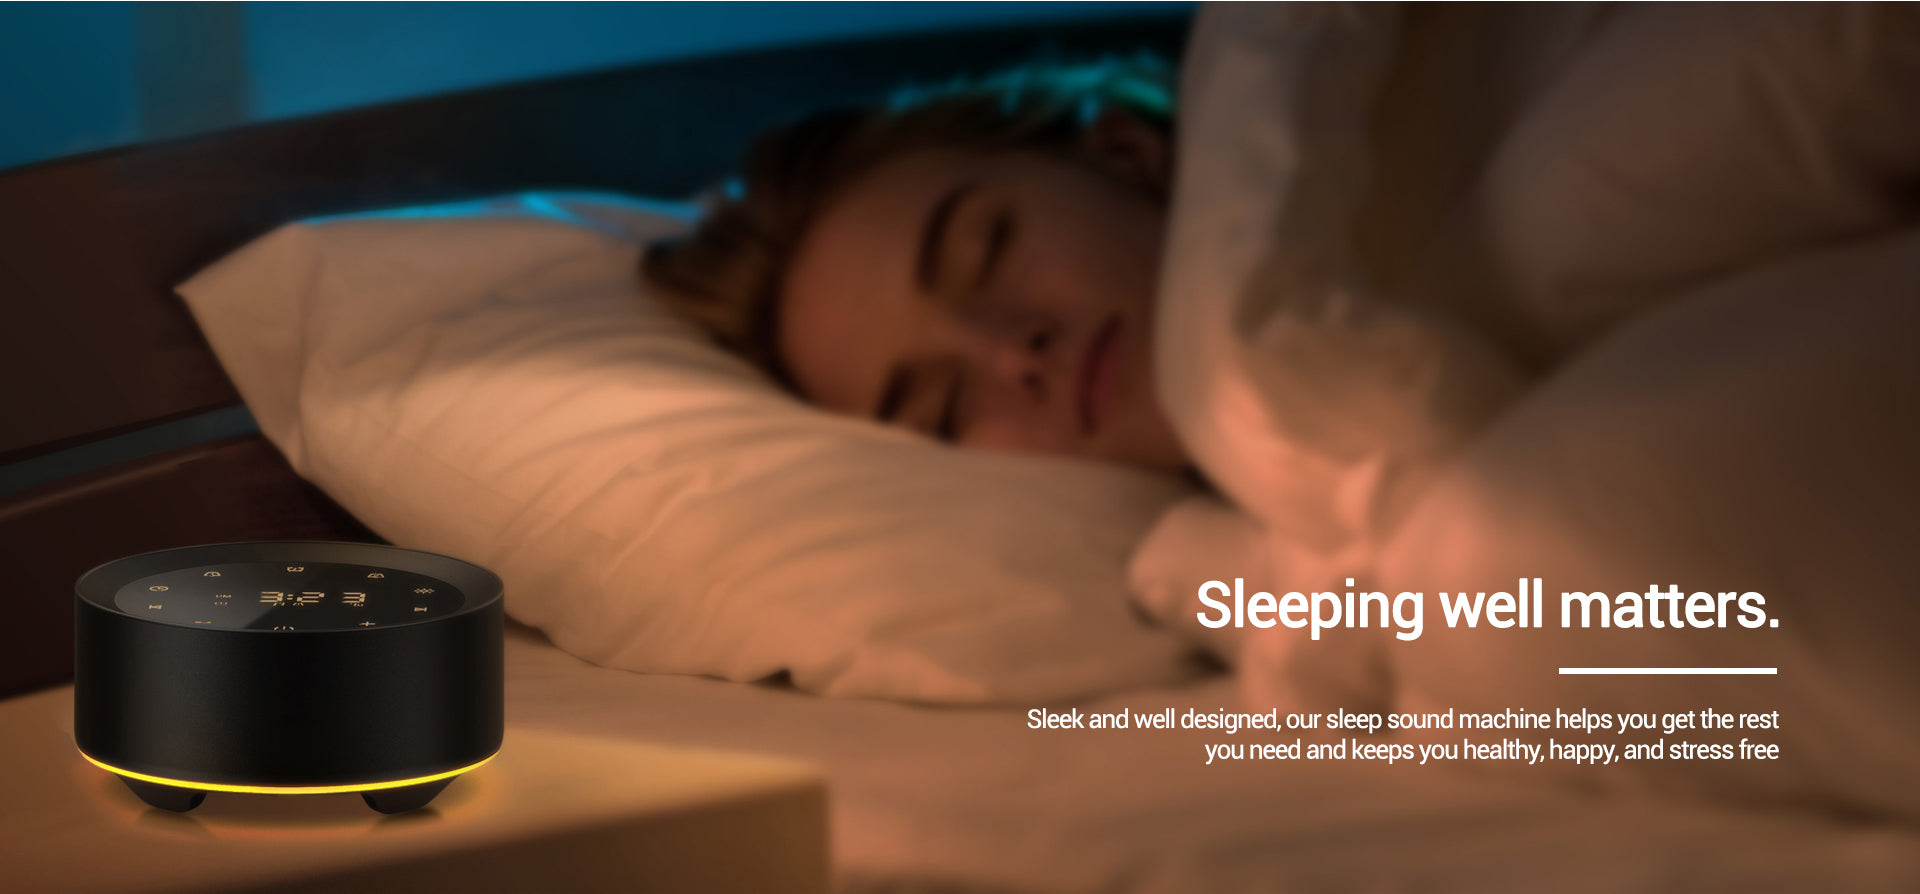 Sleek and well designed, our sleep sound machine helps you get the restyou need and keeps you healthy, happy, and stress free.